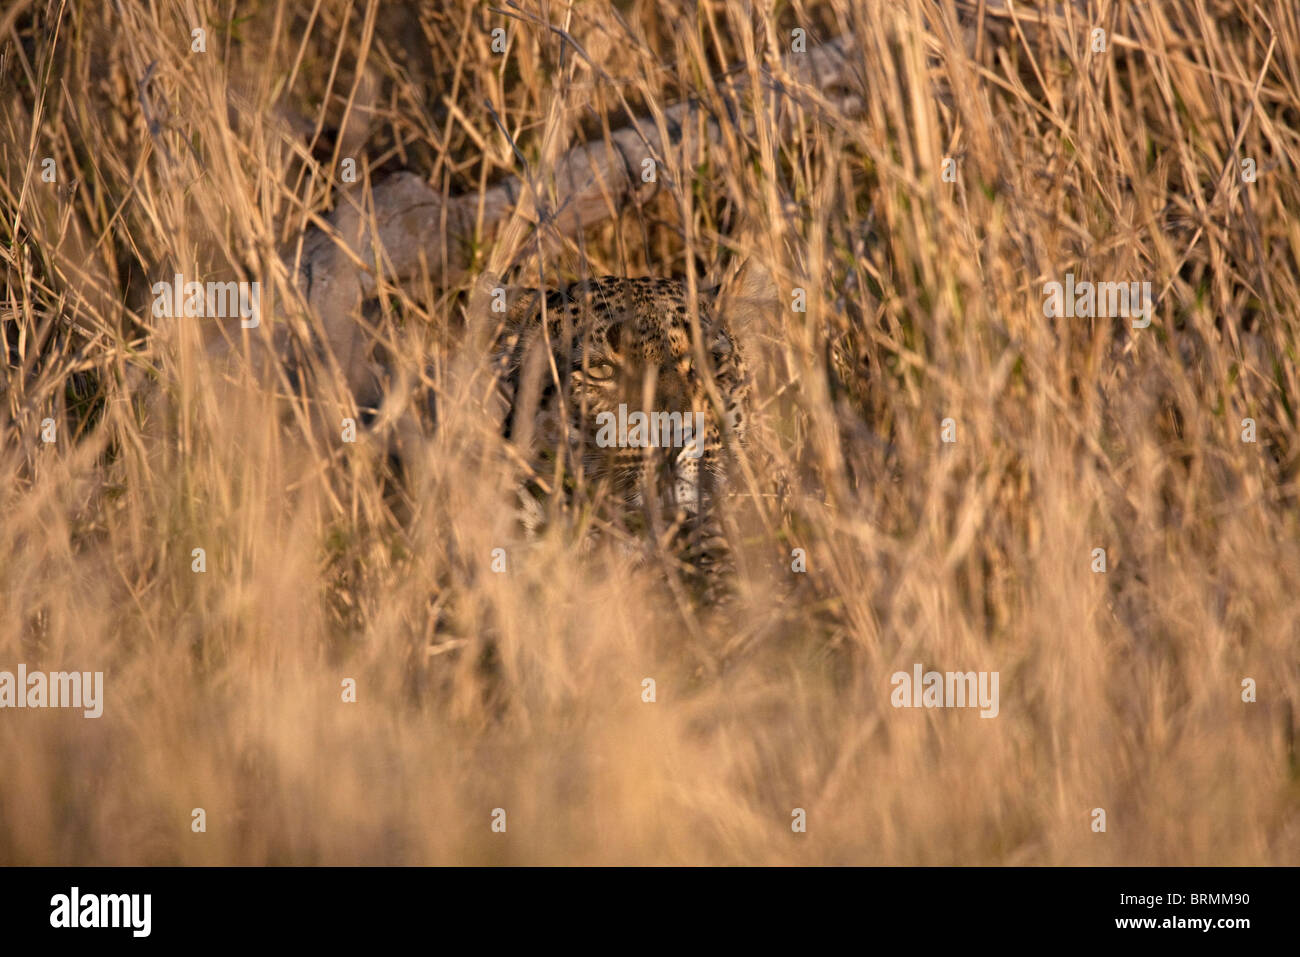 Leopard concealed in long dry grass - Stock Image